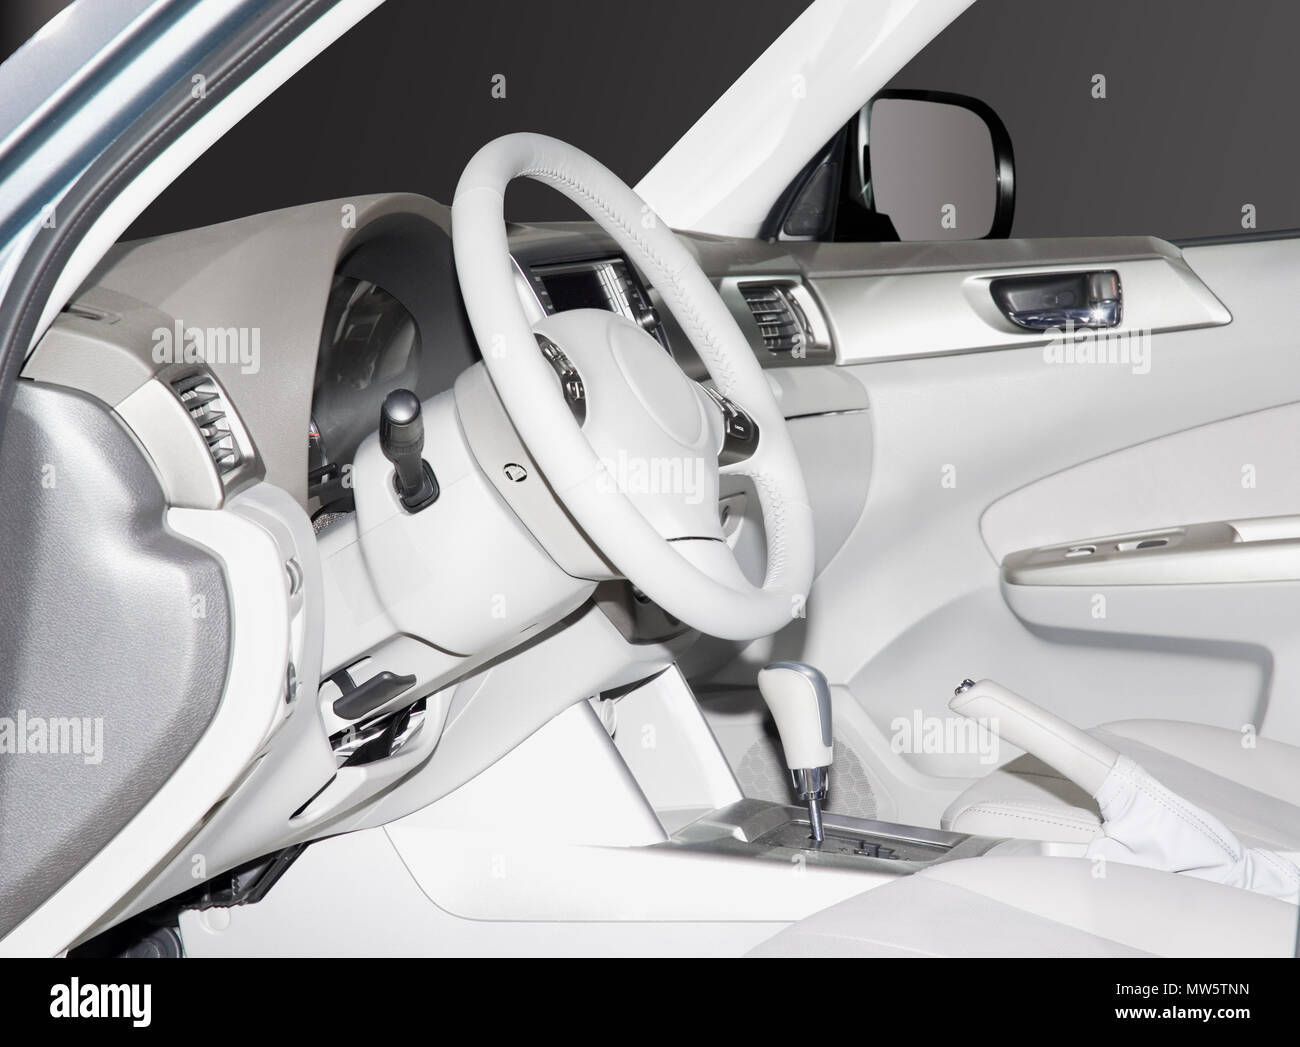 Inside Look At A White Leather New Car Interior Very Clean Sleek Lines And Elegant Design Stock Photo Alamy